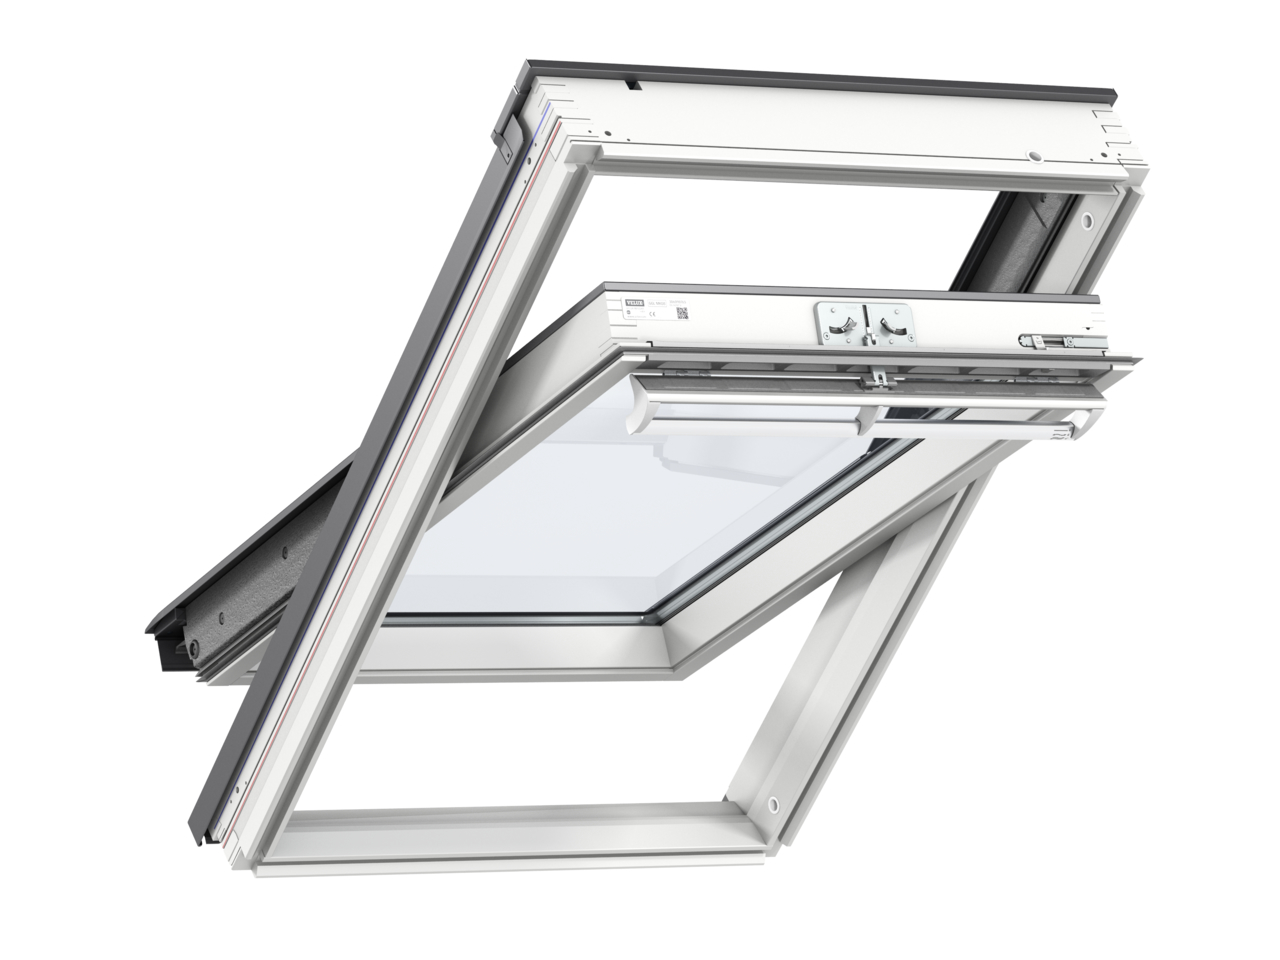 Velux GGL MK08 780 x 1400mm Centre Pivot 62Pane Roof Window - White Painted